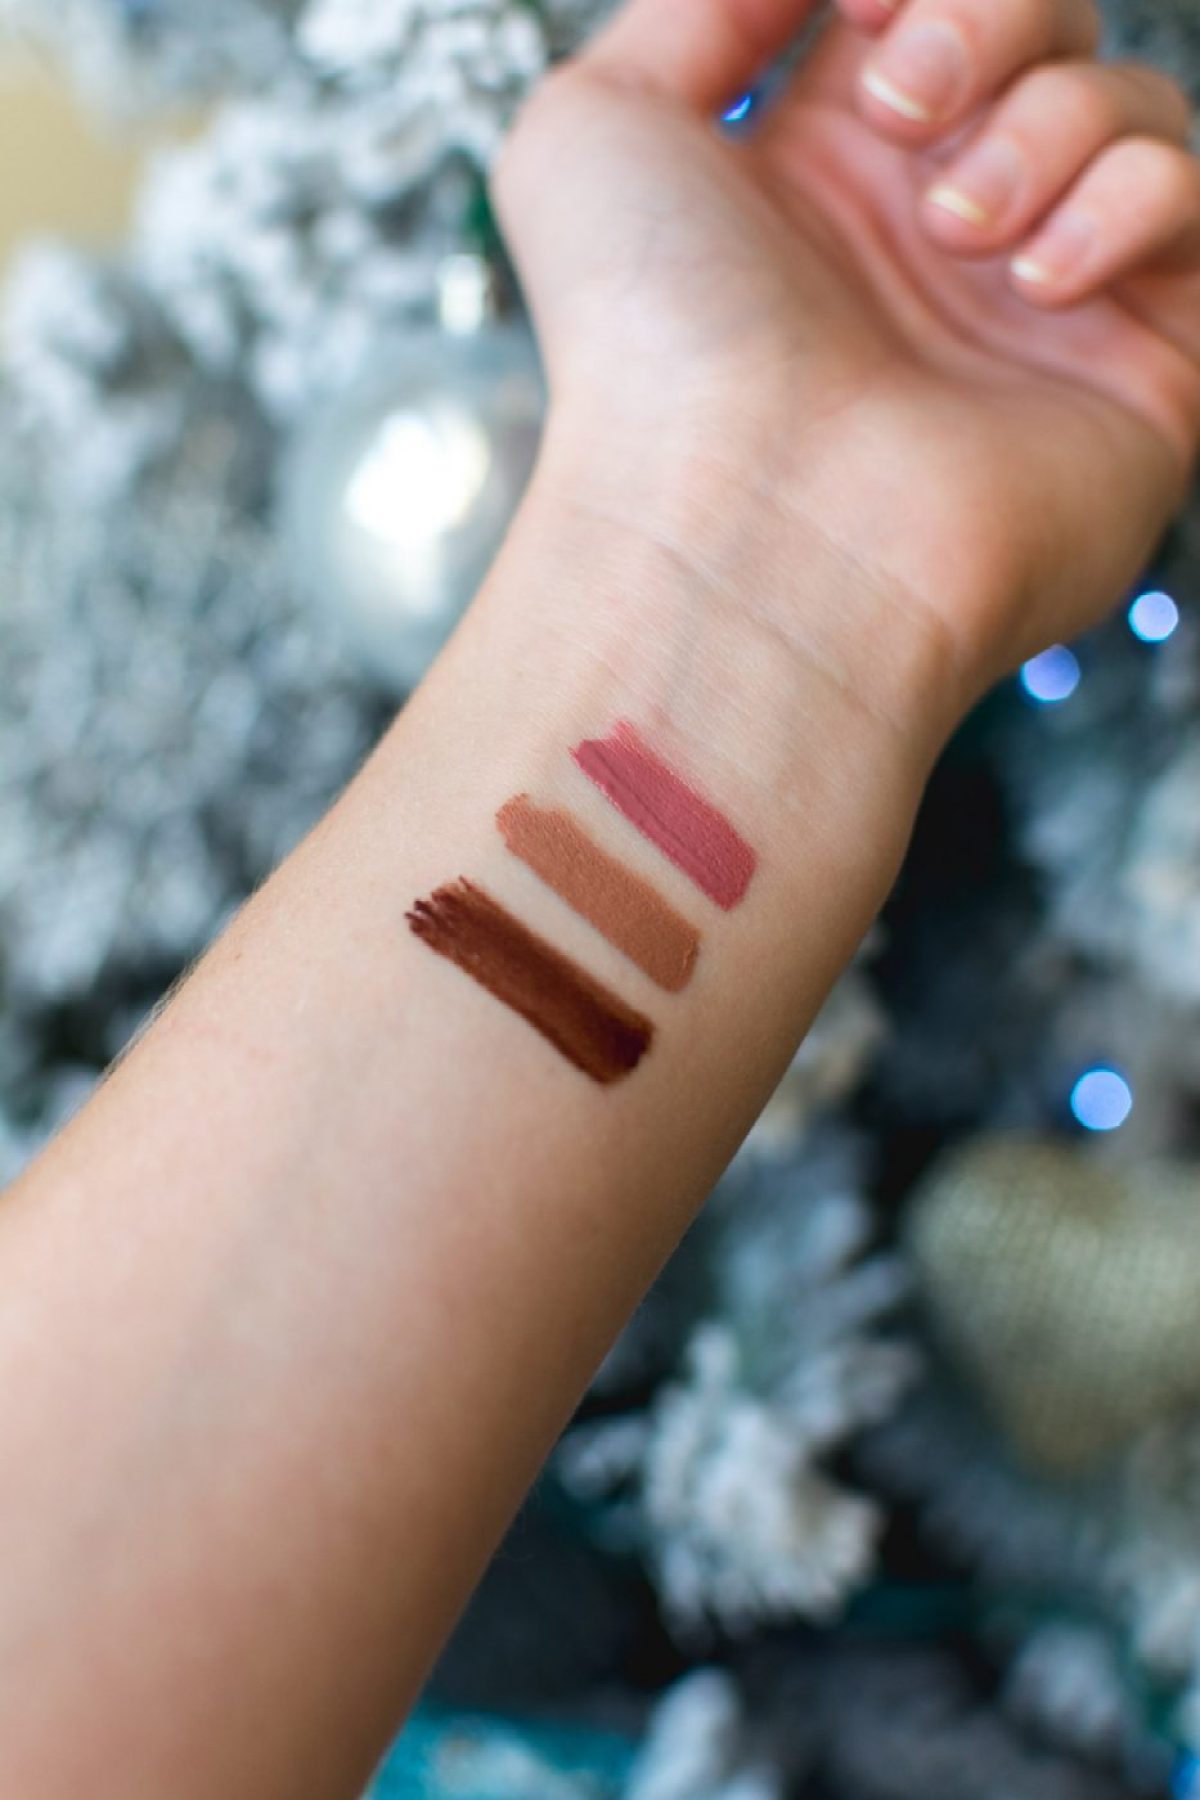 L'Oreal Infallible Paints Swatches - Sweet Teal